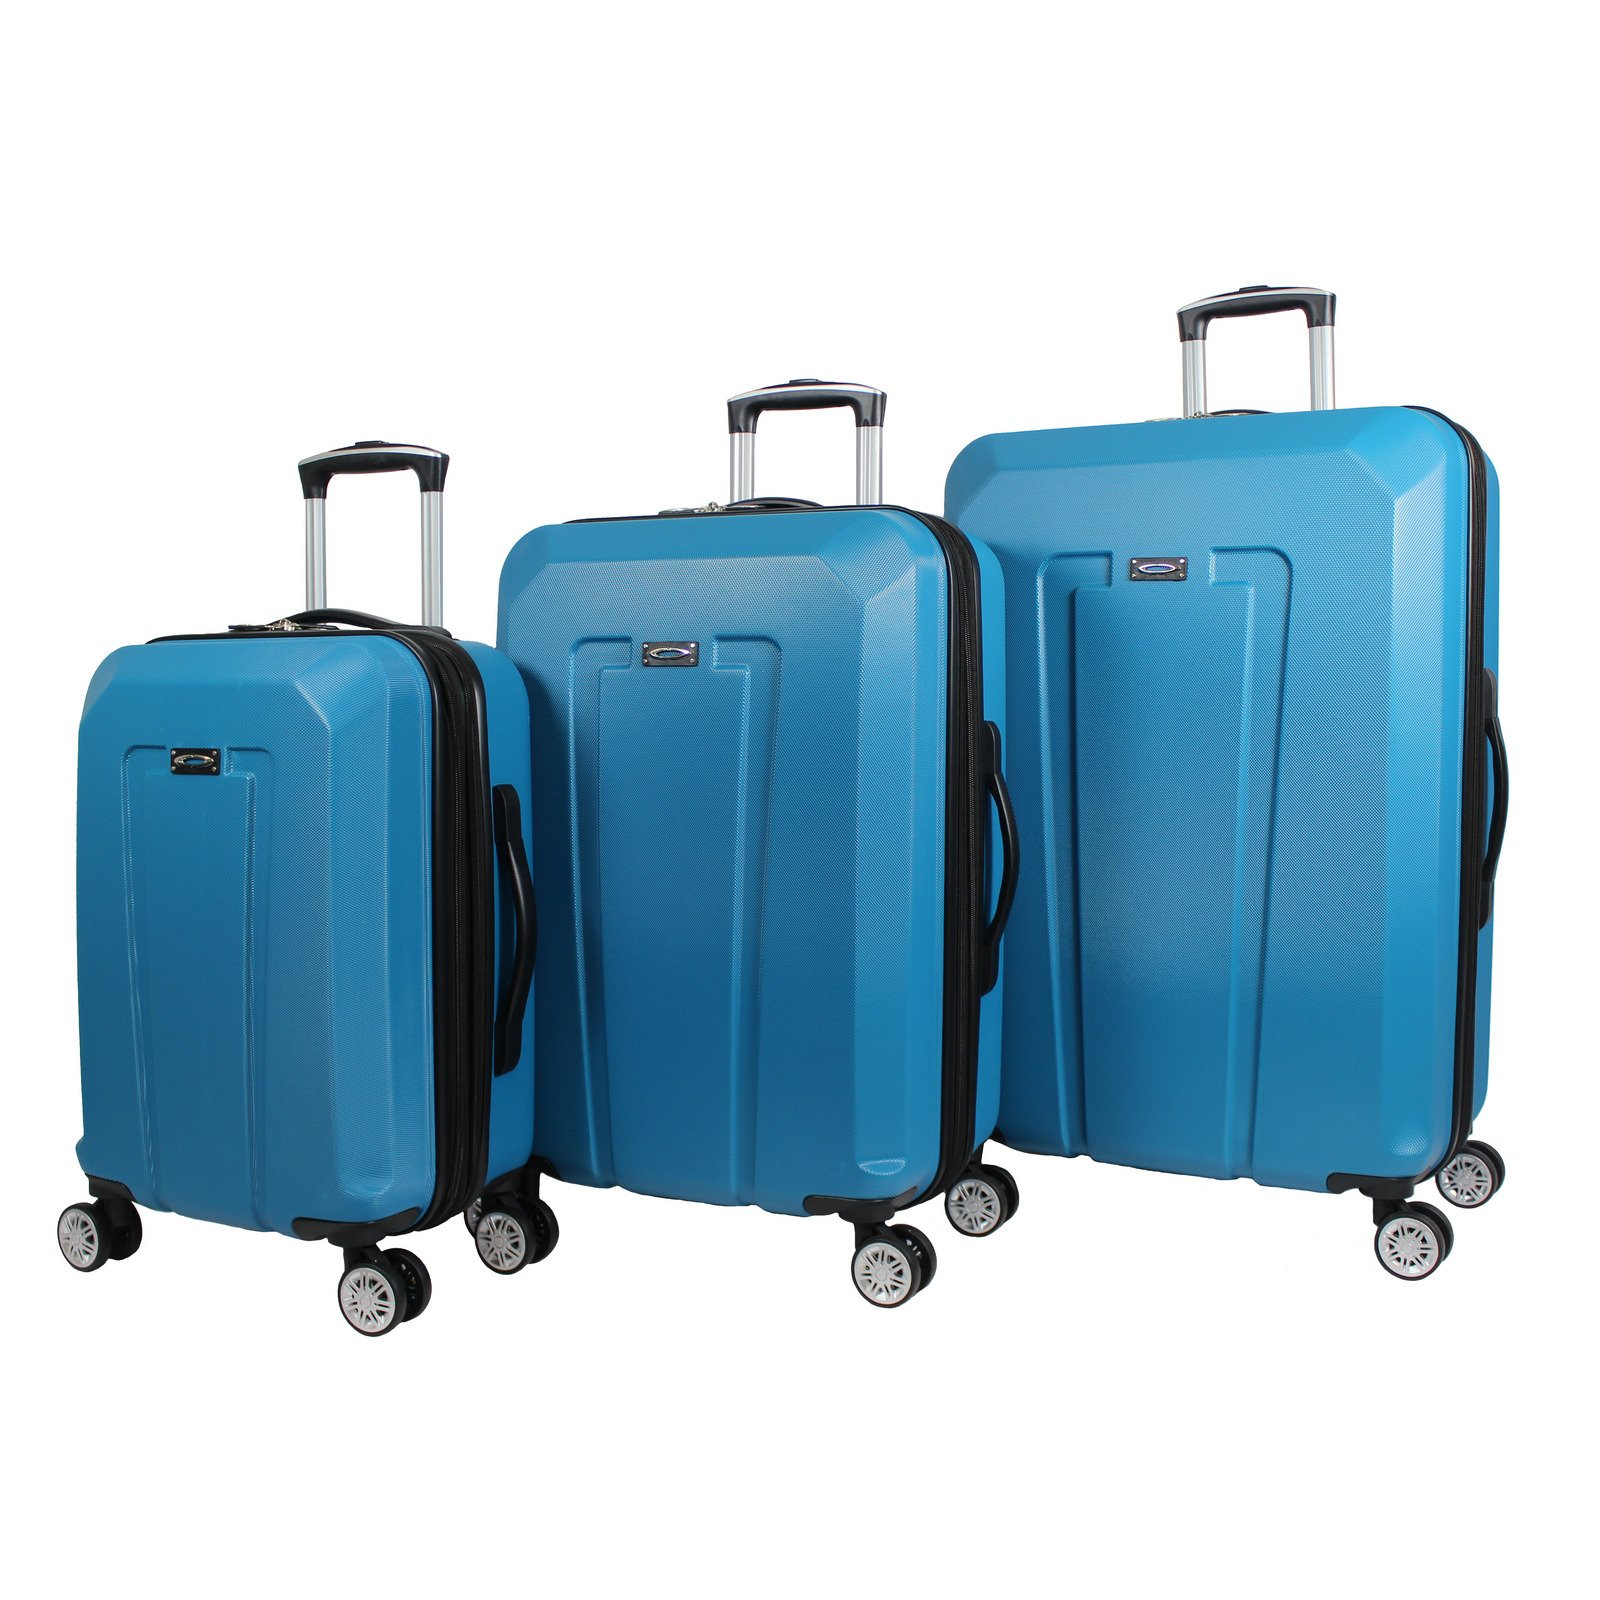 Kemyer Teal Light Weight 3-Piece Hardside Spinner Luggage Set by Kemyer